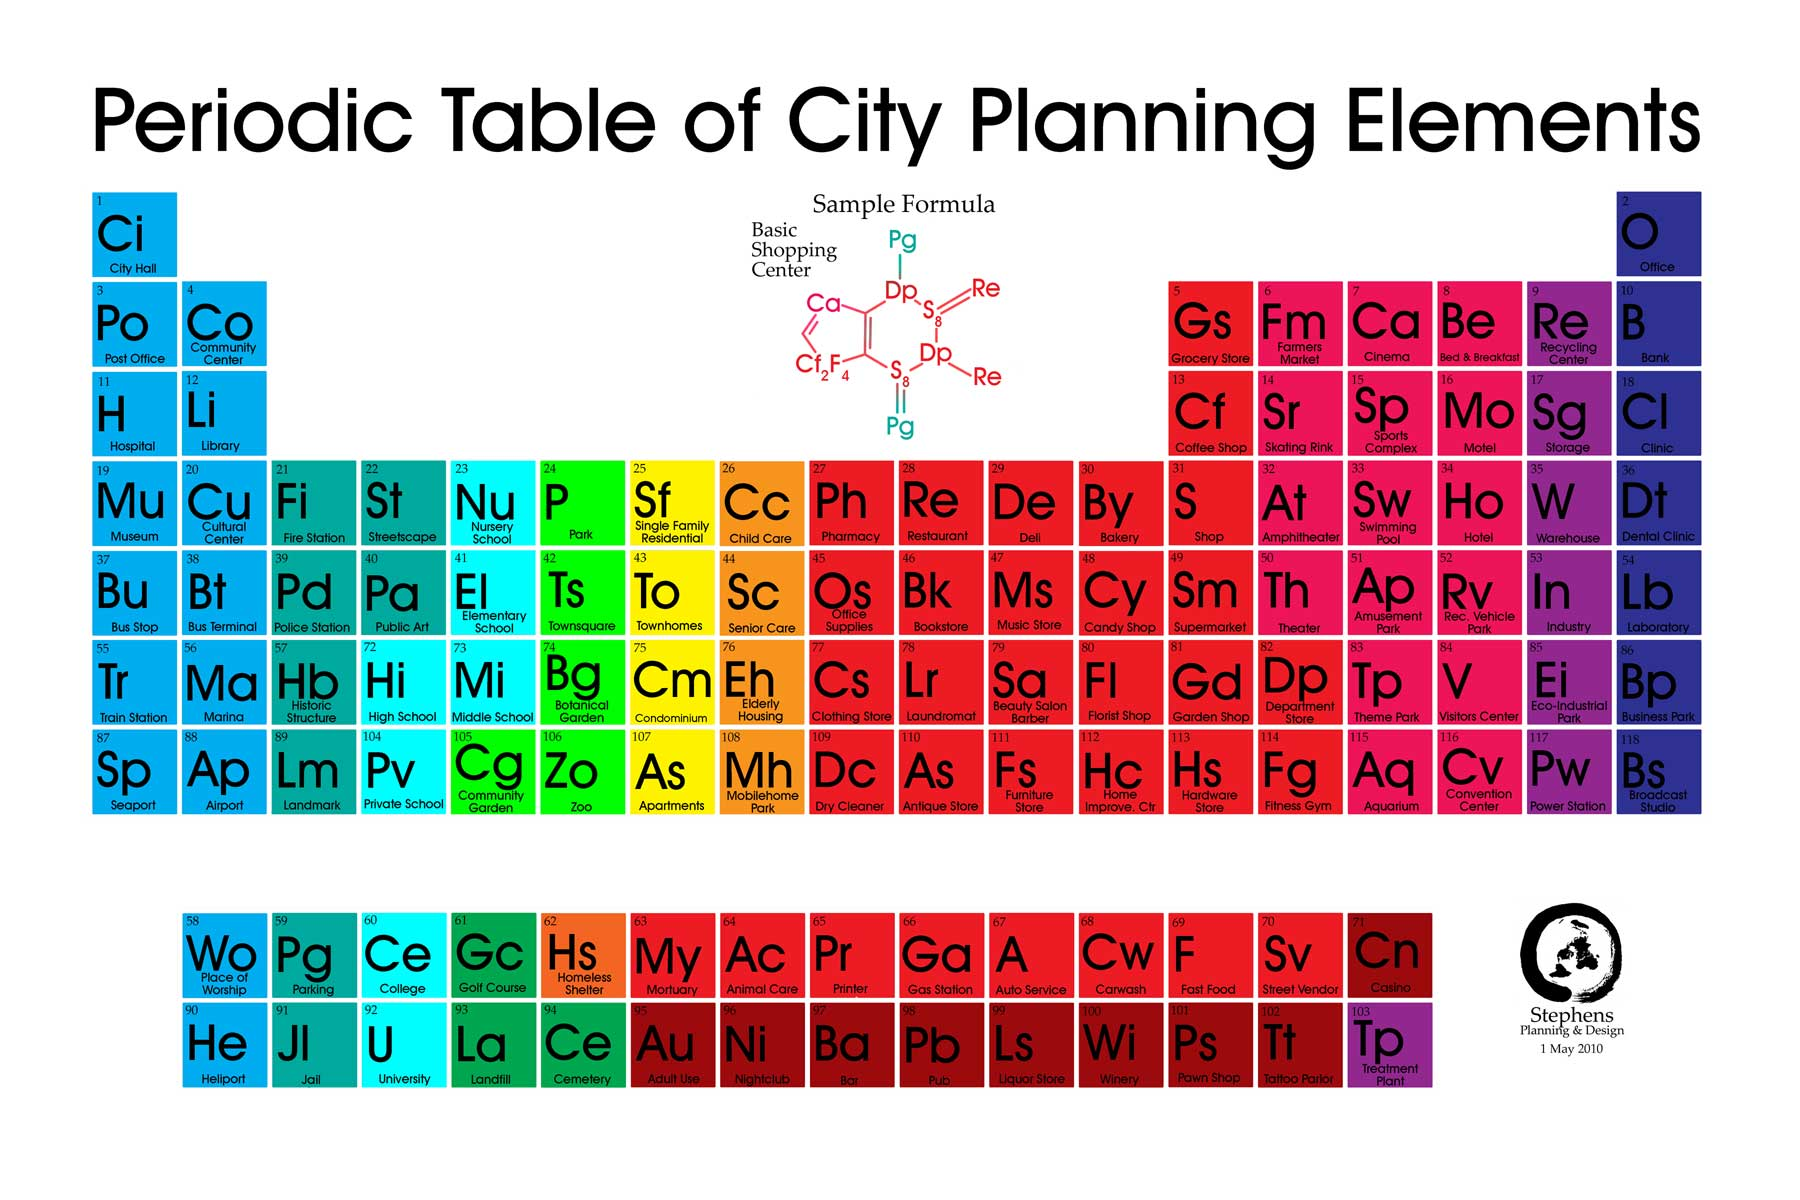 The periodic table of city planning elements features planetizen click the image to see a larger version in a new window urtaz Images